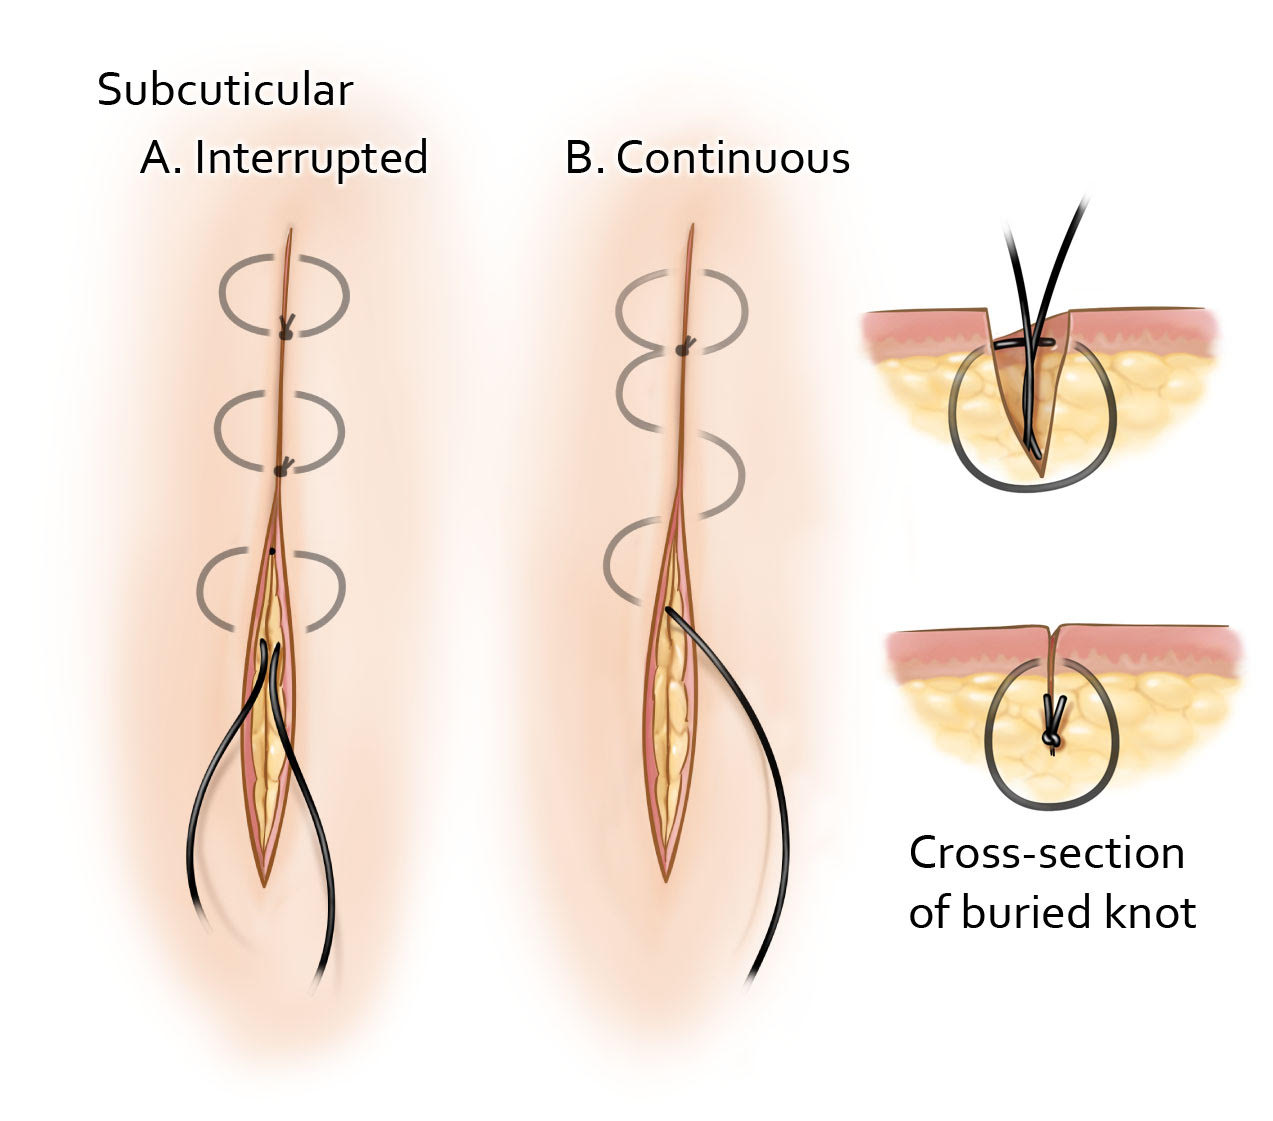 Figure 7: The subcuticular suturing technique is the standard technique for cosmetic skin closure. Both the interrupted and continuous suturing techniques involve reapproximating the dermis. The interrupted technique involves an inverted suturing technique to ensure the knot is buried. The needle should enter the subcutaneous tissue and then pass through the dermal layer before exiting again in the subcutaneous tissue. The continuous suturing technique requires an anchoring tie 2-3 mm from the apex or if a knotless technique is being used, the needle can be passed into the dermis at the apex to start the closure. The dermal approximation should be performed using uniform depth bites parallel to the incision line. Following completion of the incision line, the suture can be tied at the apex and brought through the epidermis in an exit stitch or the exit stitch can be used alone for a knotless technique.